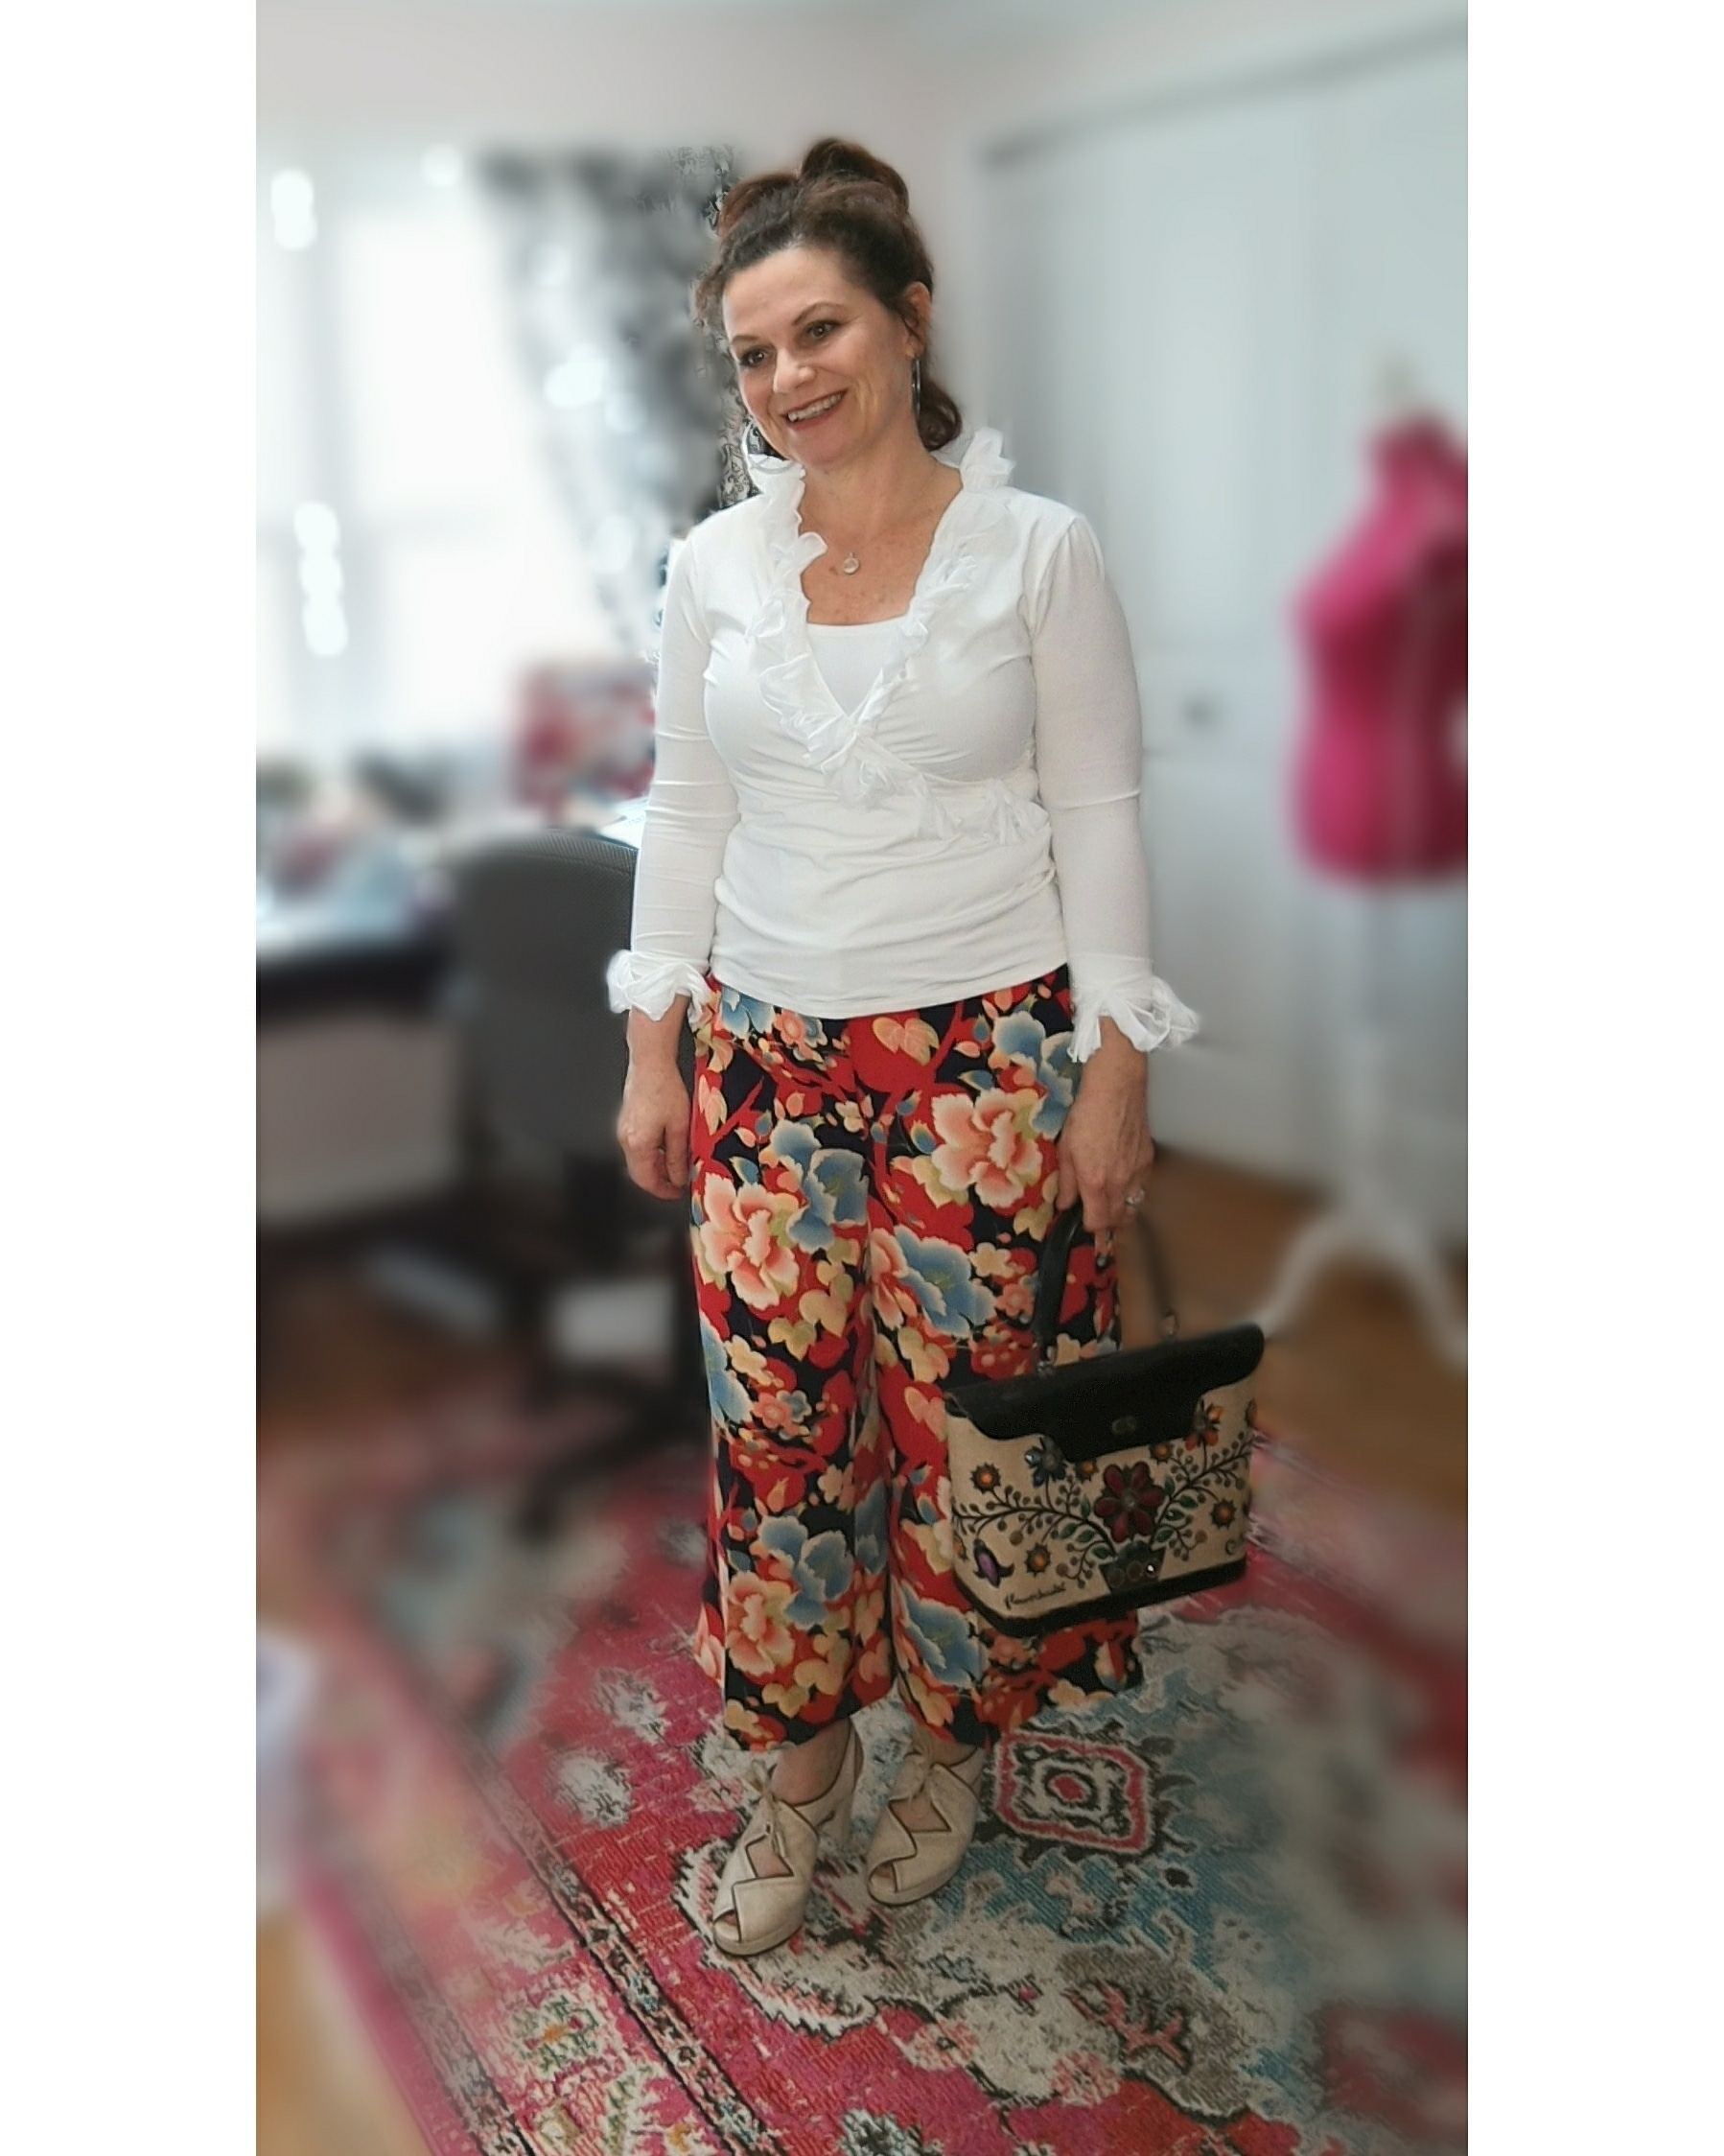 Go full color with a Print! - Be bold in your color choice with a colorful print pant, skirt, or dress.  When I wear these pants I tend to keep the top either white or denim but you could easily pull any of the colors thru.